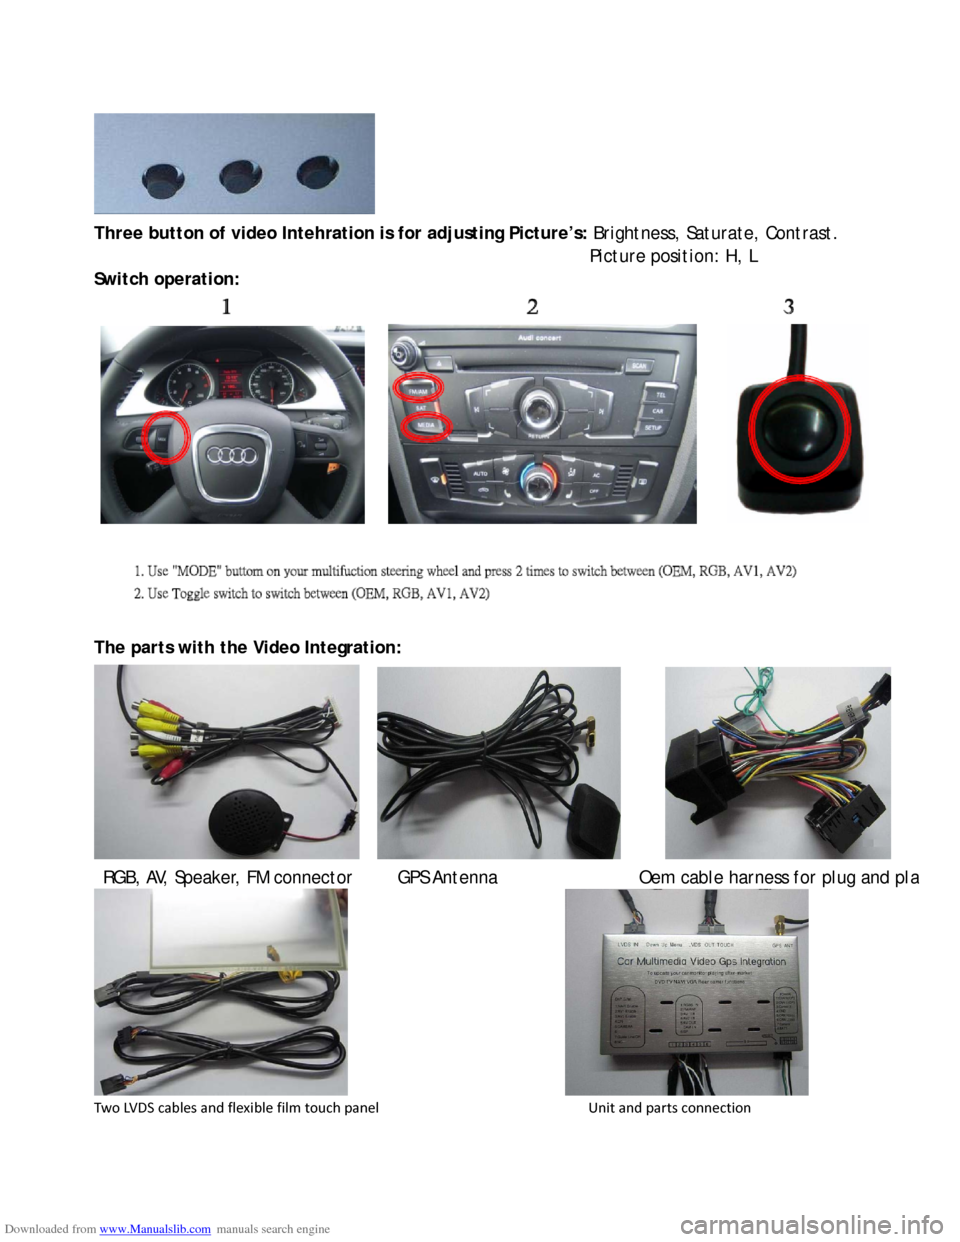 AUDI Q5 2010 8R / 1.G Navigation System Instalation Manual Downloaded from www.Manualslib.com manuals search engine    Three button of video Intehration is for adjusting Picture's: Brightness, Saturate, Contrast.